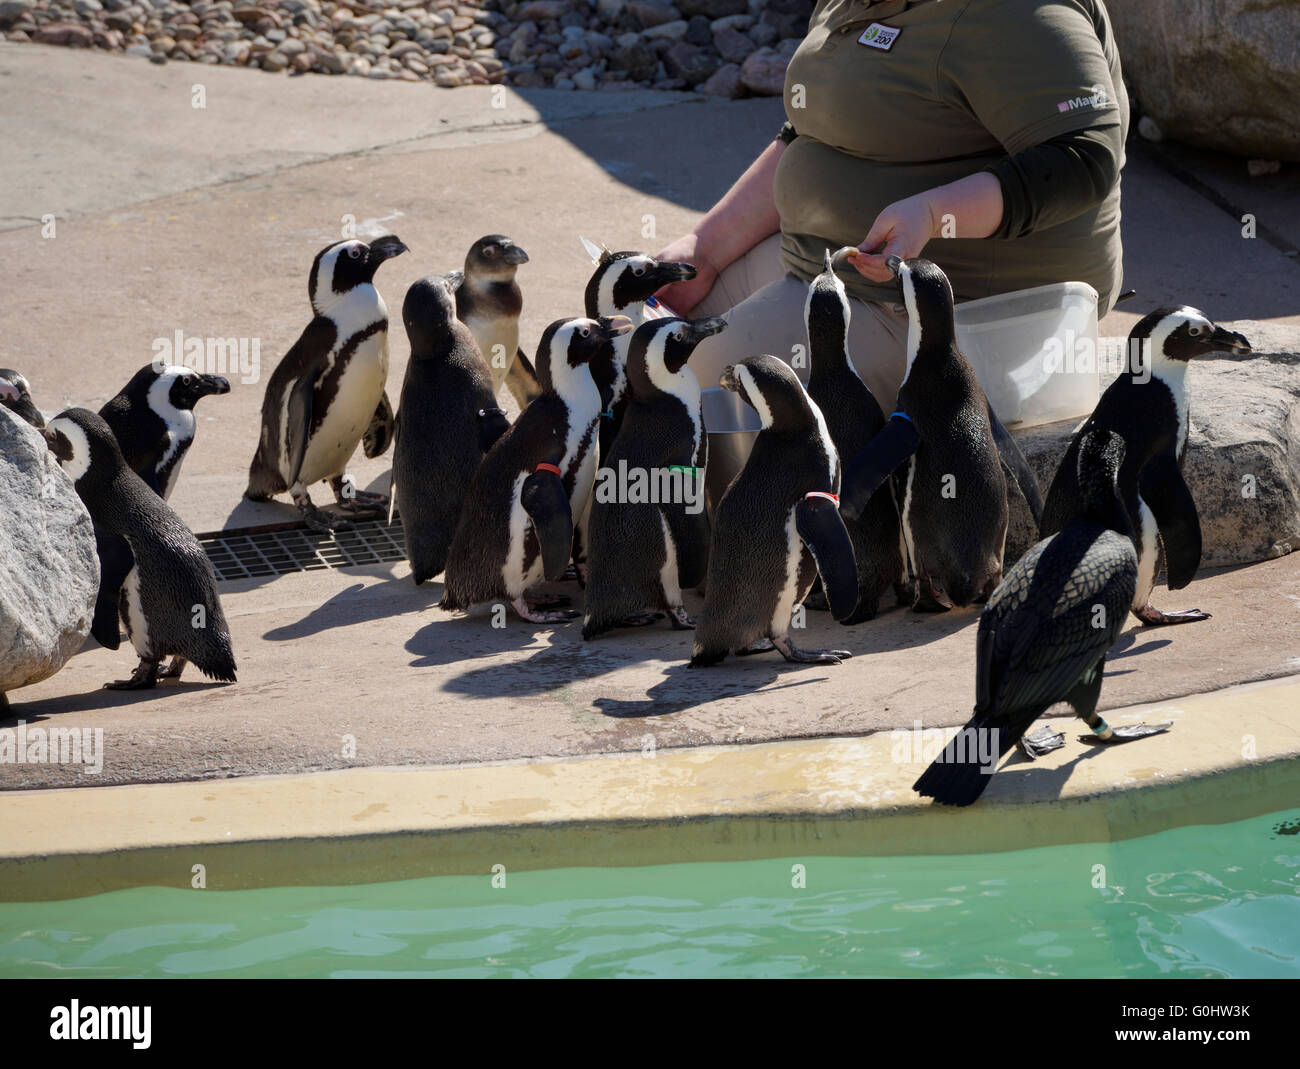 Zoo keeper feeding African Penguins poolside - Stock Image